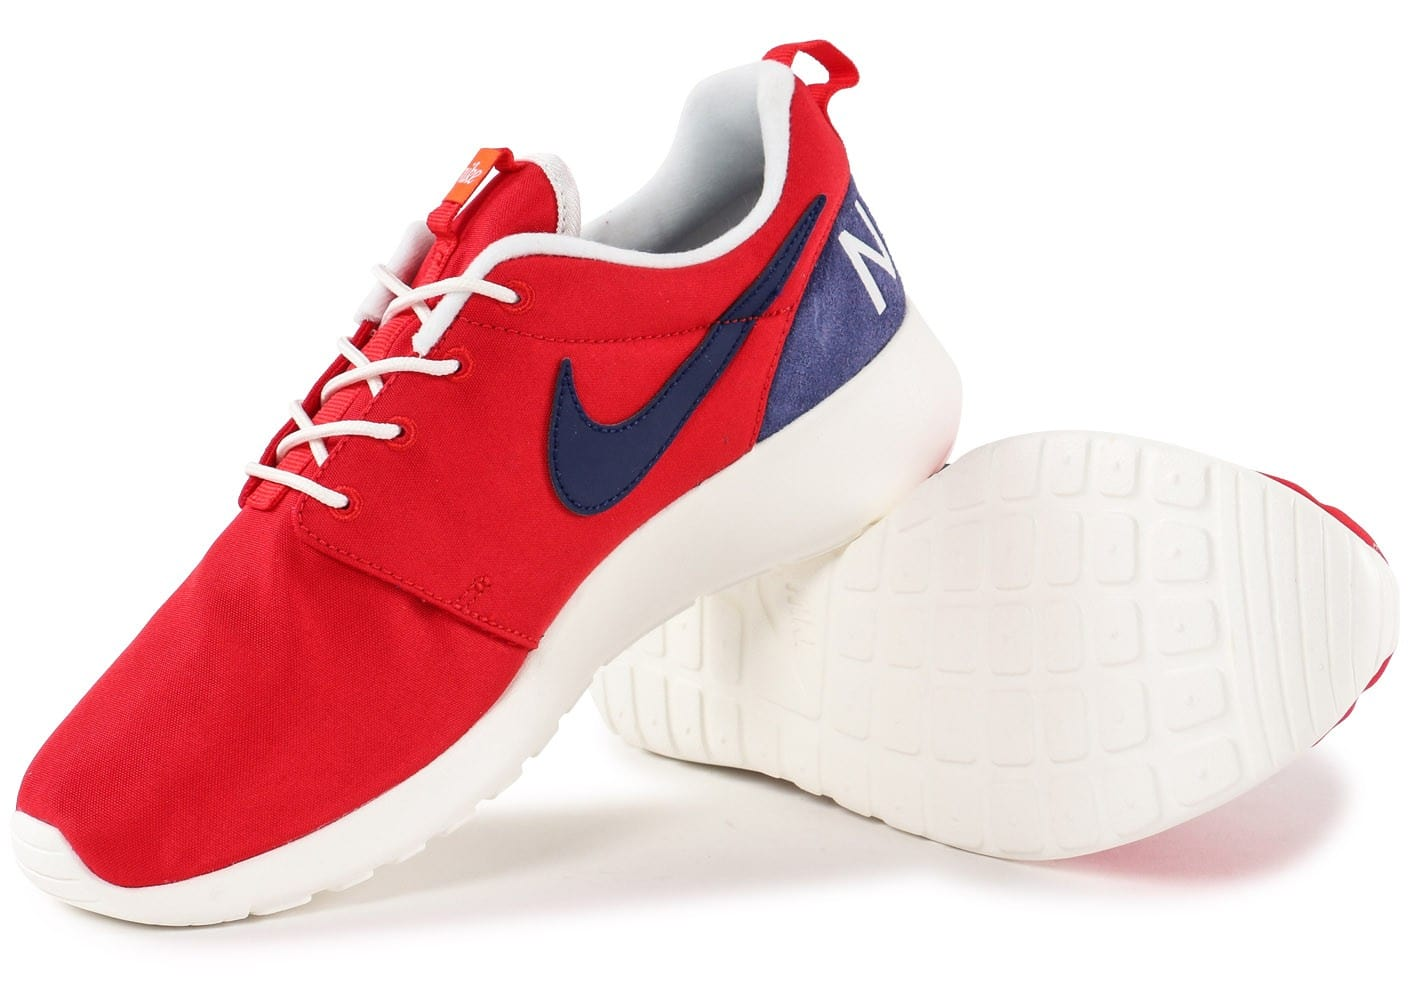 meilleures baskets 43939 a6f83 nike roshe one rouge,basket nike roshe run pas cher nike ...